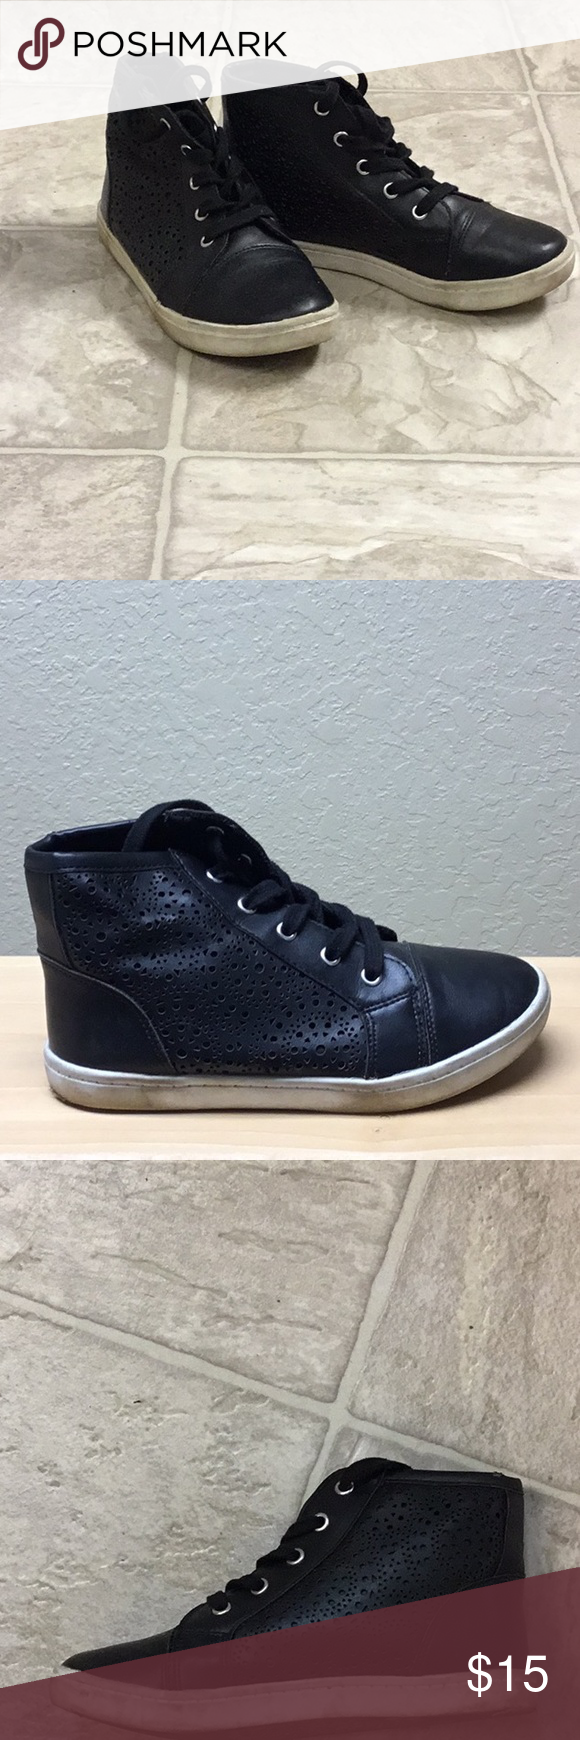 Cool 'Report' faux leather High Tops